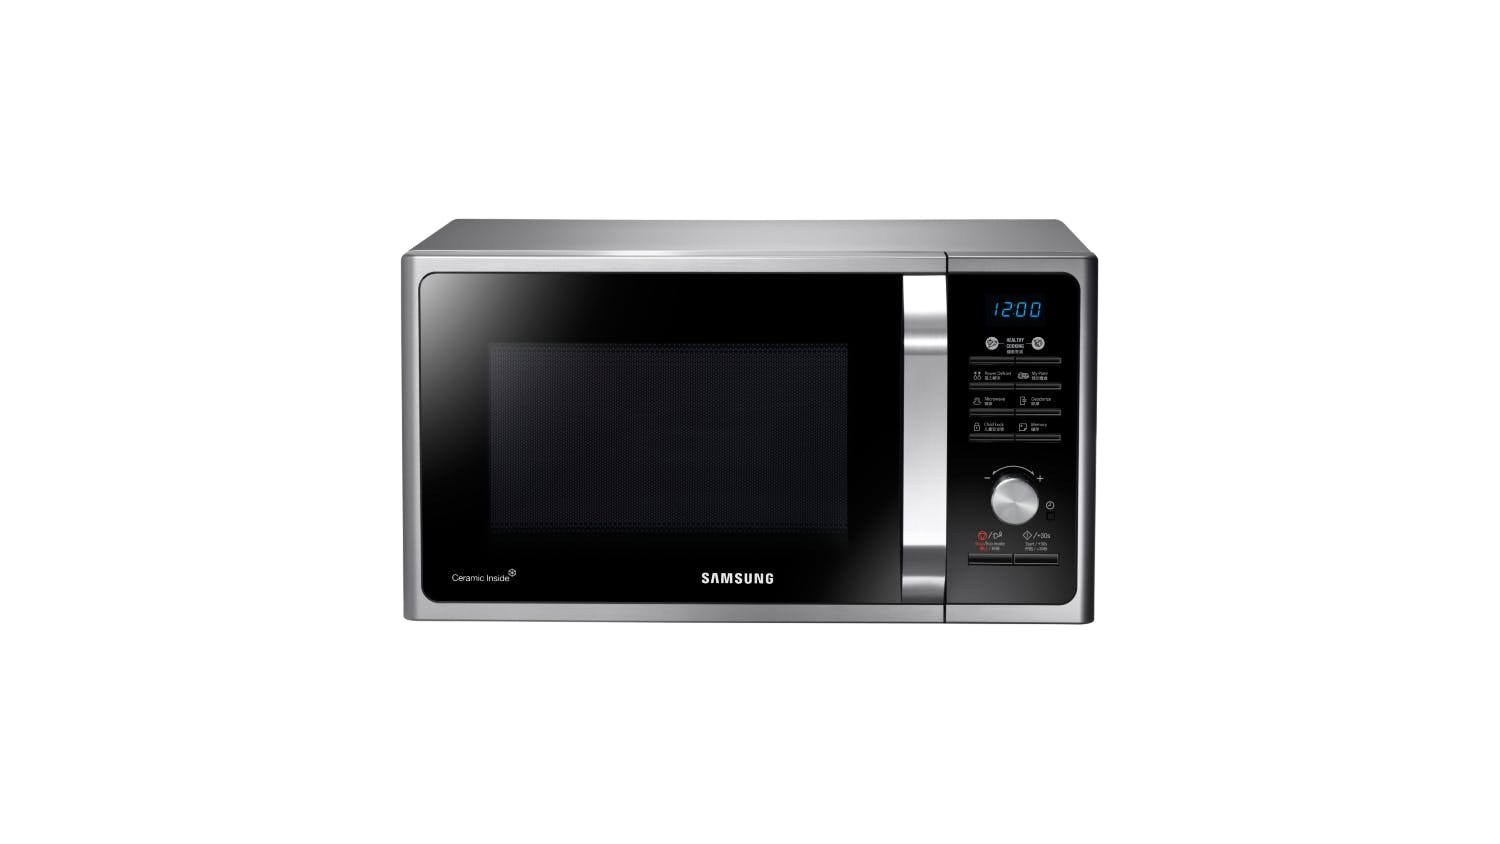 Heavy Duty Microwaves Microwave Oven Microwave Panasonic Microwave Oven More